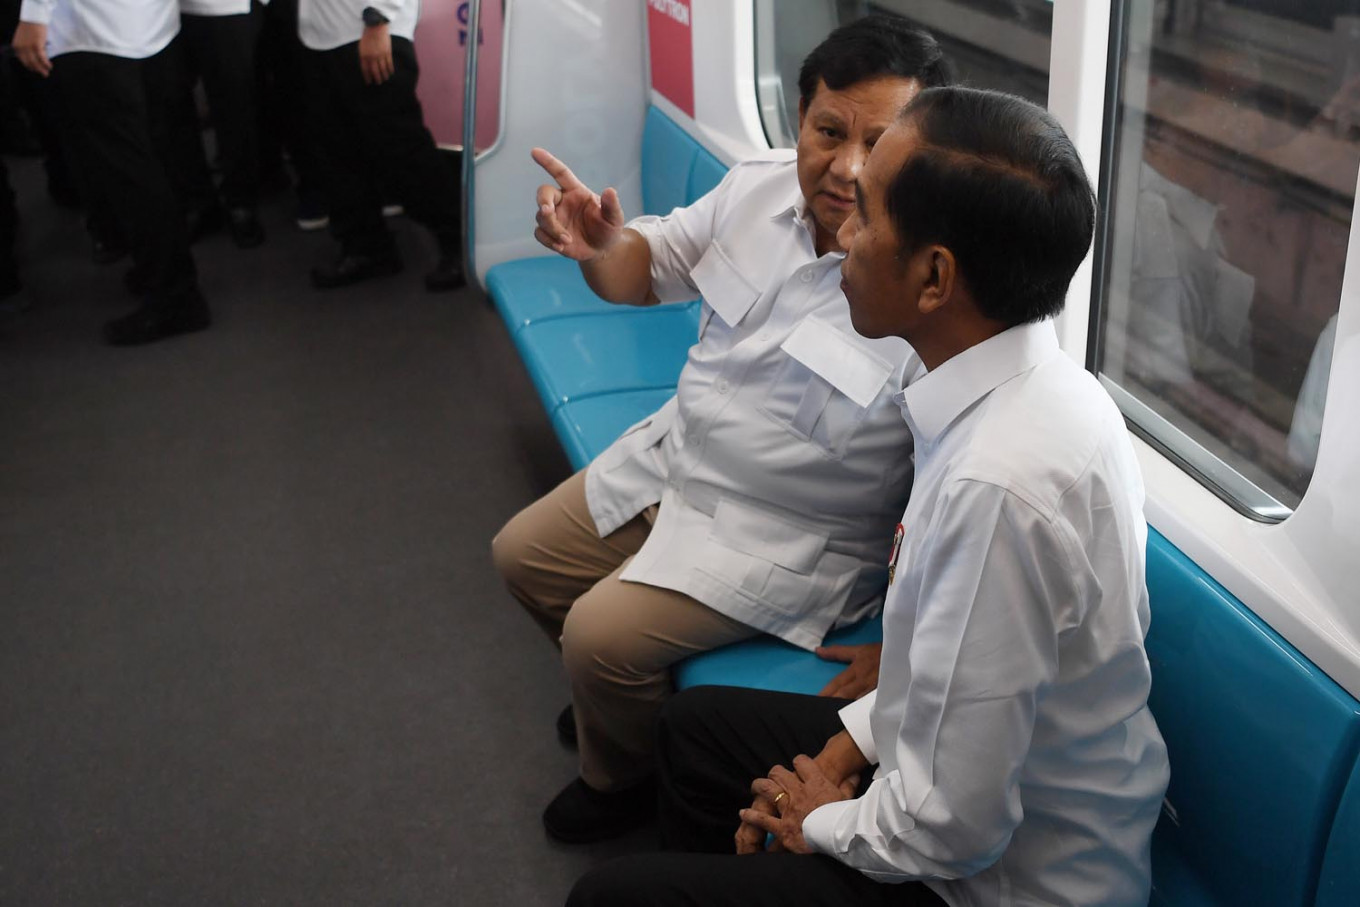 Jokowi meets Prabowo: Still possible for Gerindra to join government